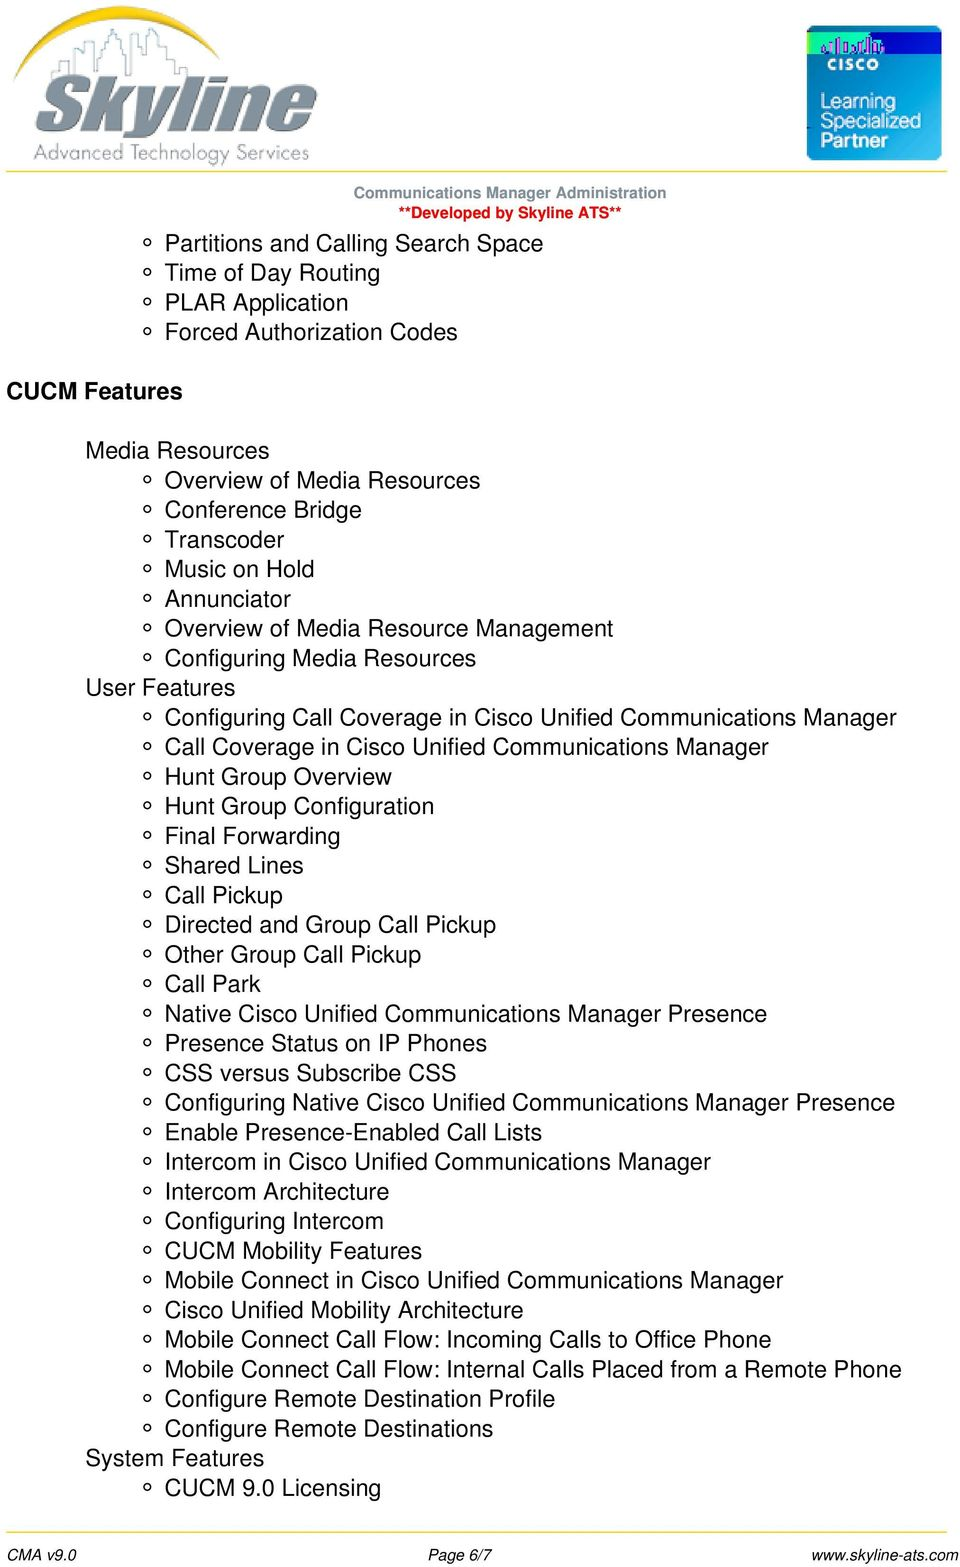 Communications Manager Hunt Group Overview Hunt Group Configuration Final Forwarding Shared Lines Call Pickup Directed and Group Call Pickup Other Group Call Pickup Call Park Native Cisco Unified